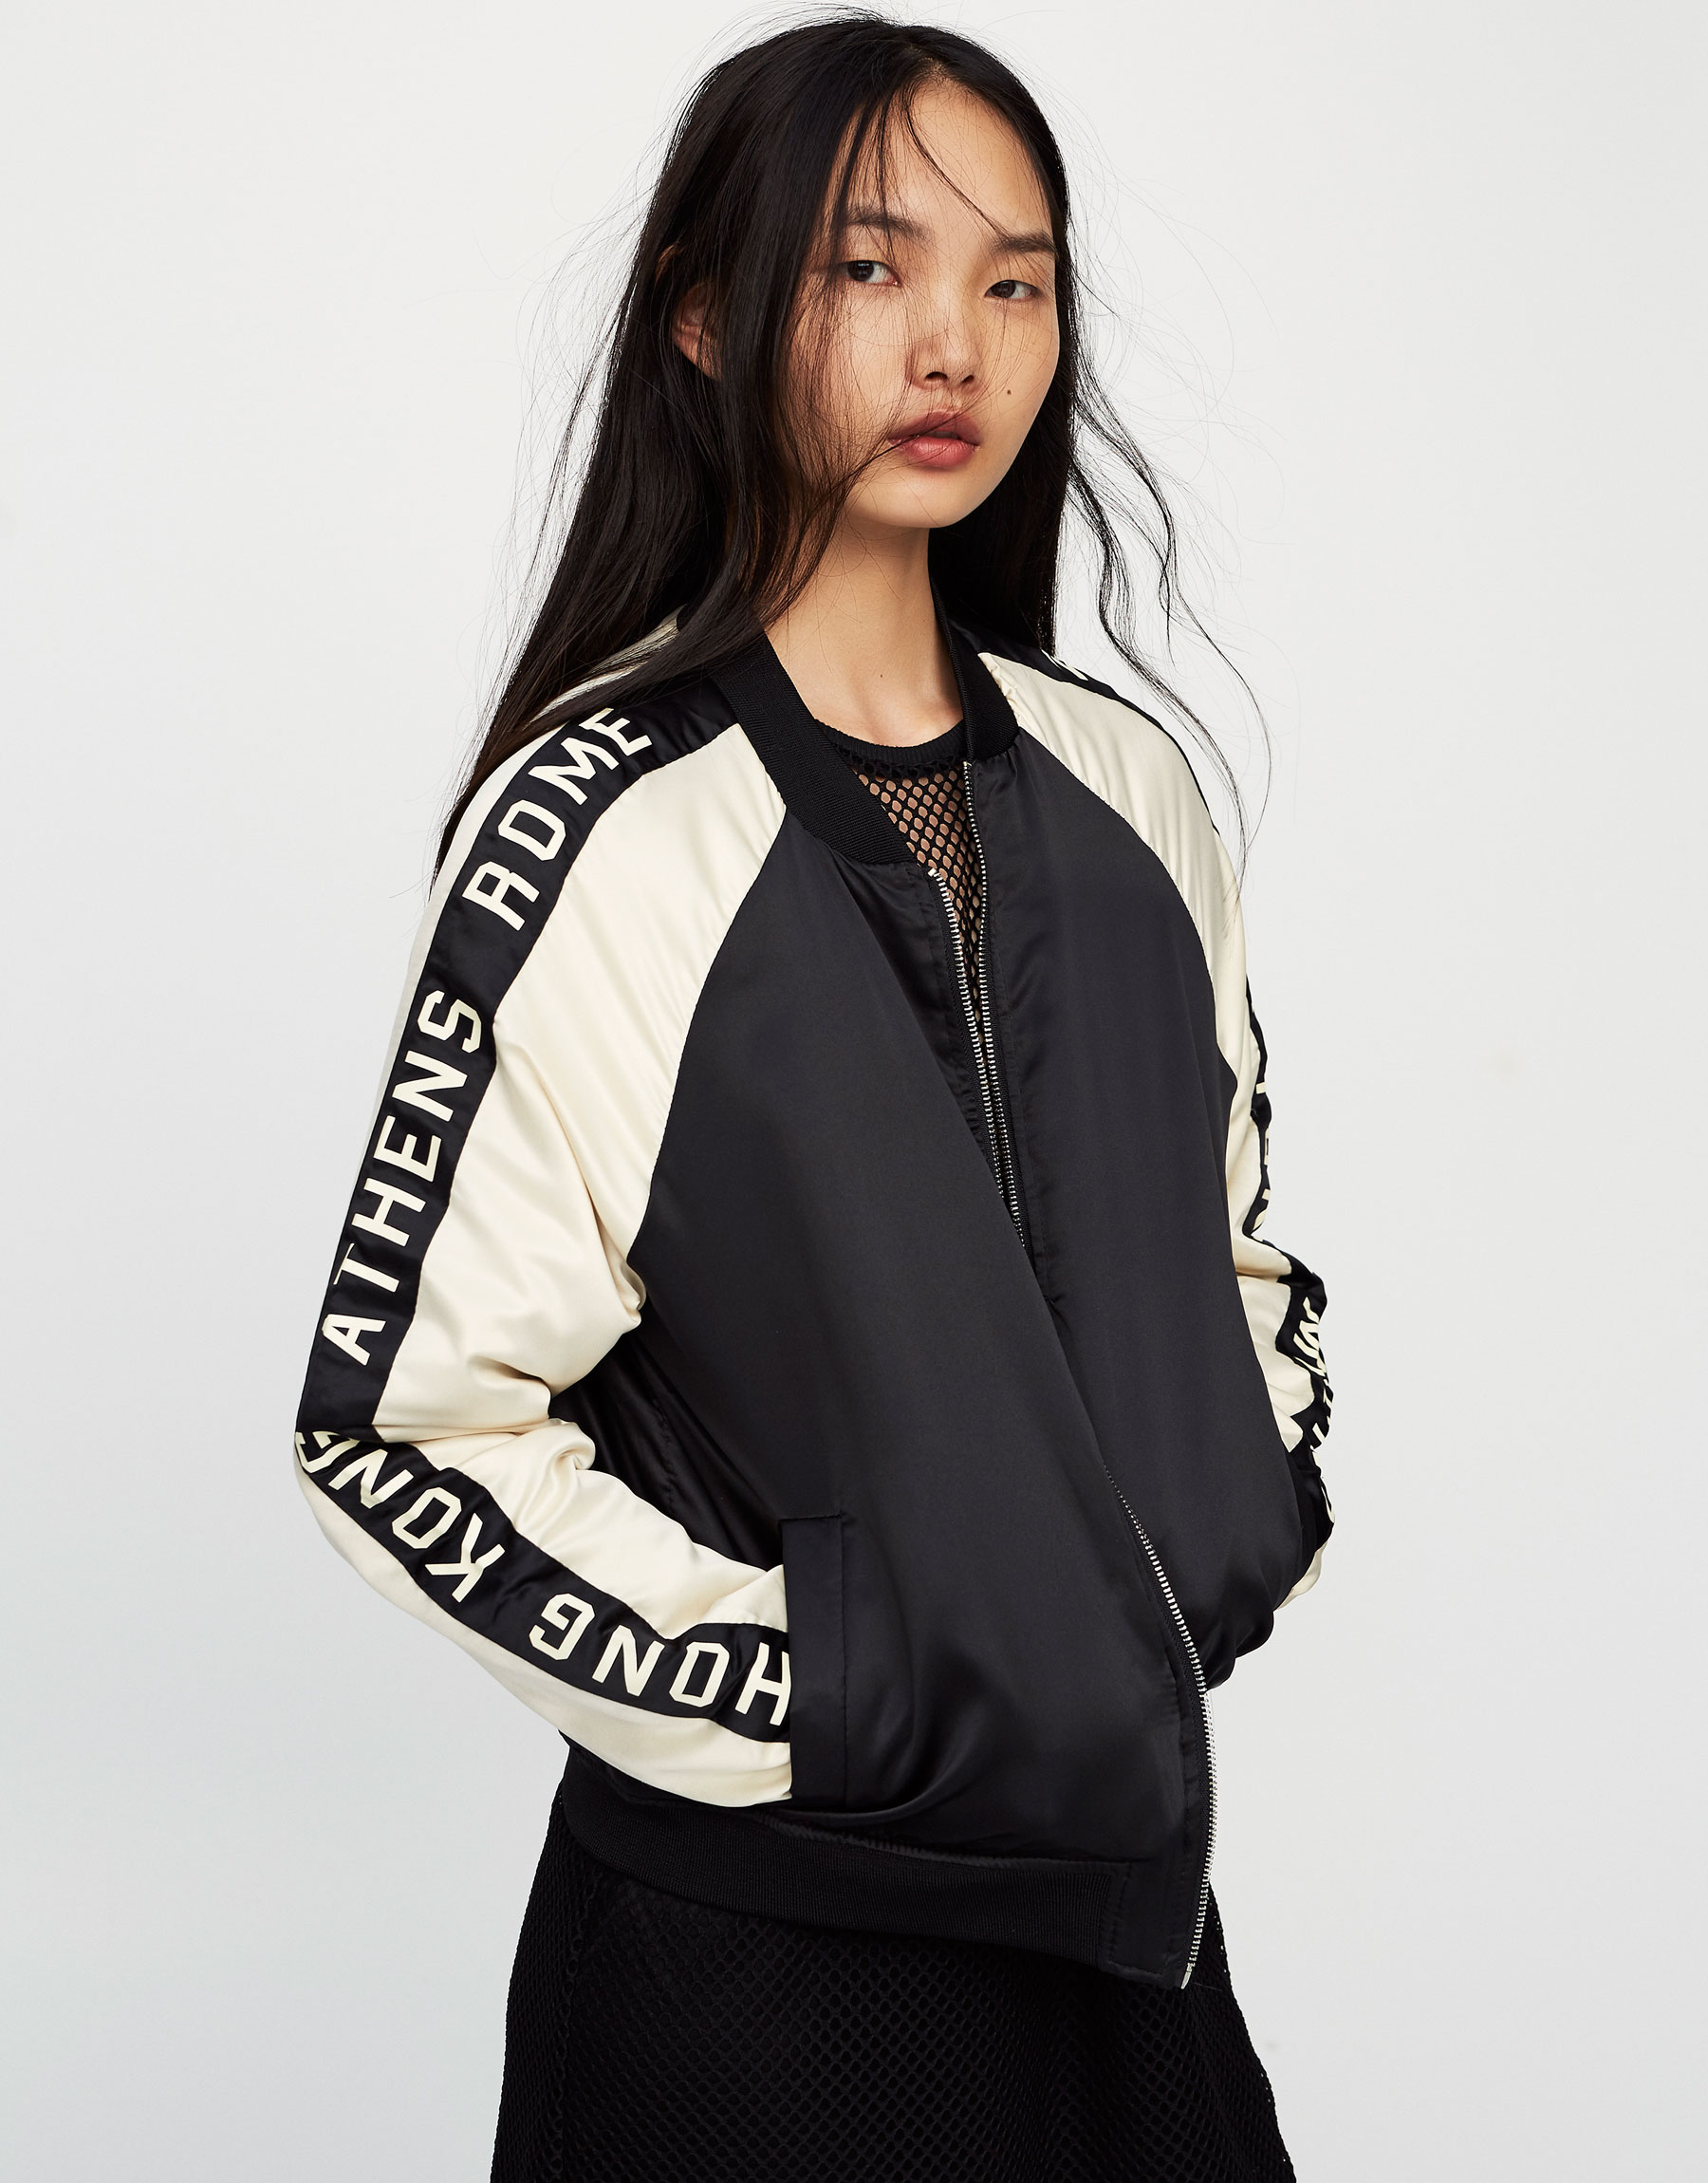 Bomber jacket with sleeves slogan